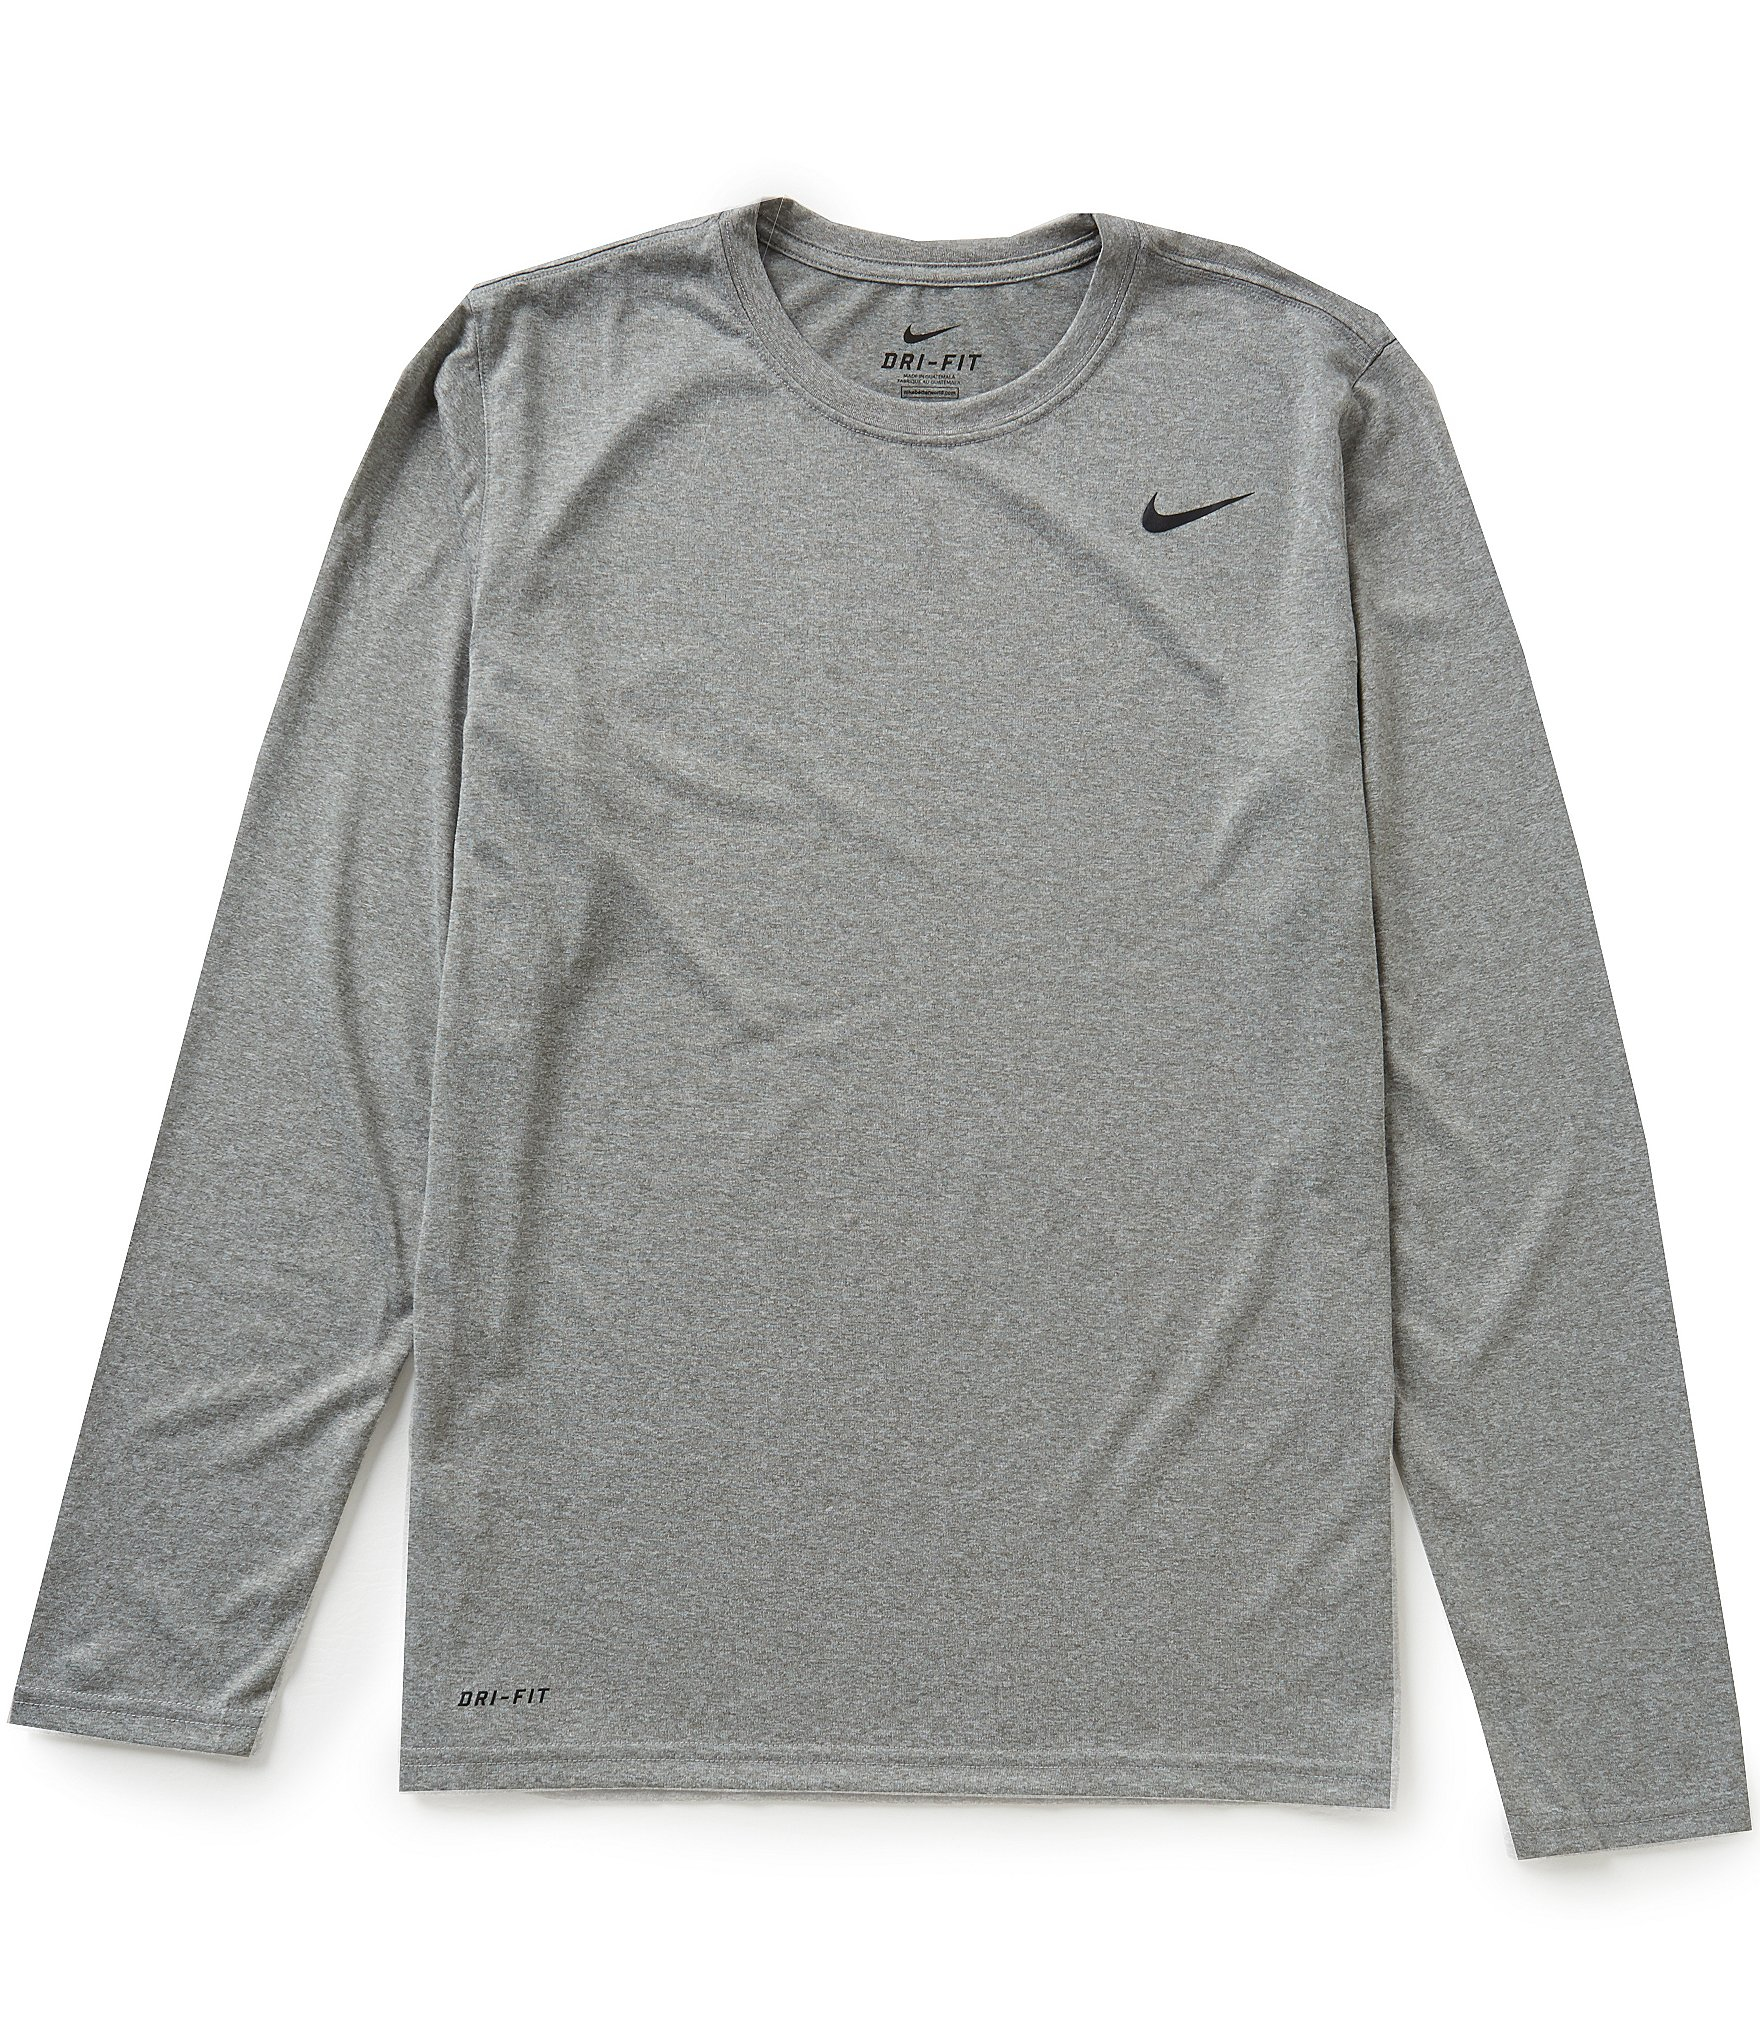 Nike long sleeve dri fit legend training tee in gray for for Under armour dri fit long sleeve shirts